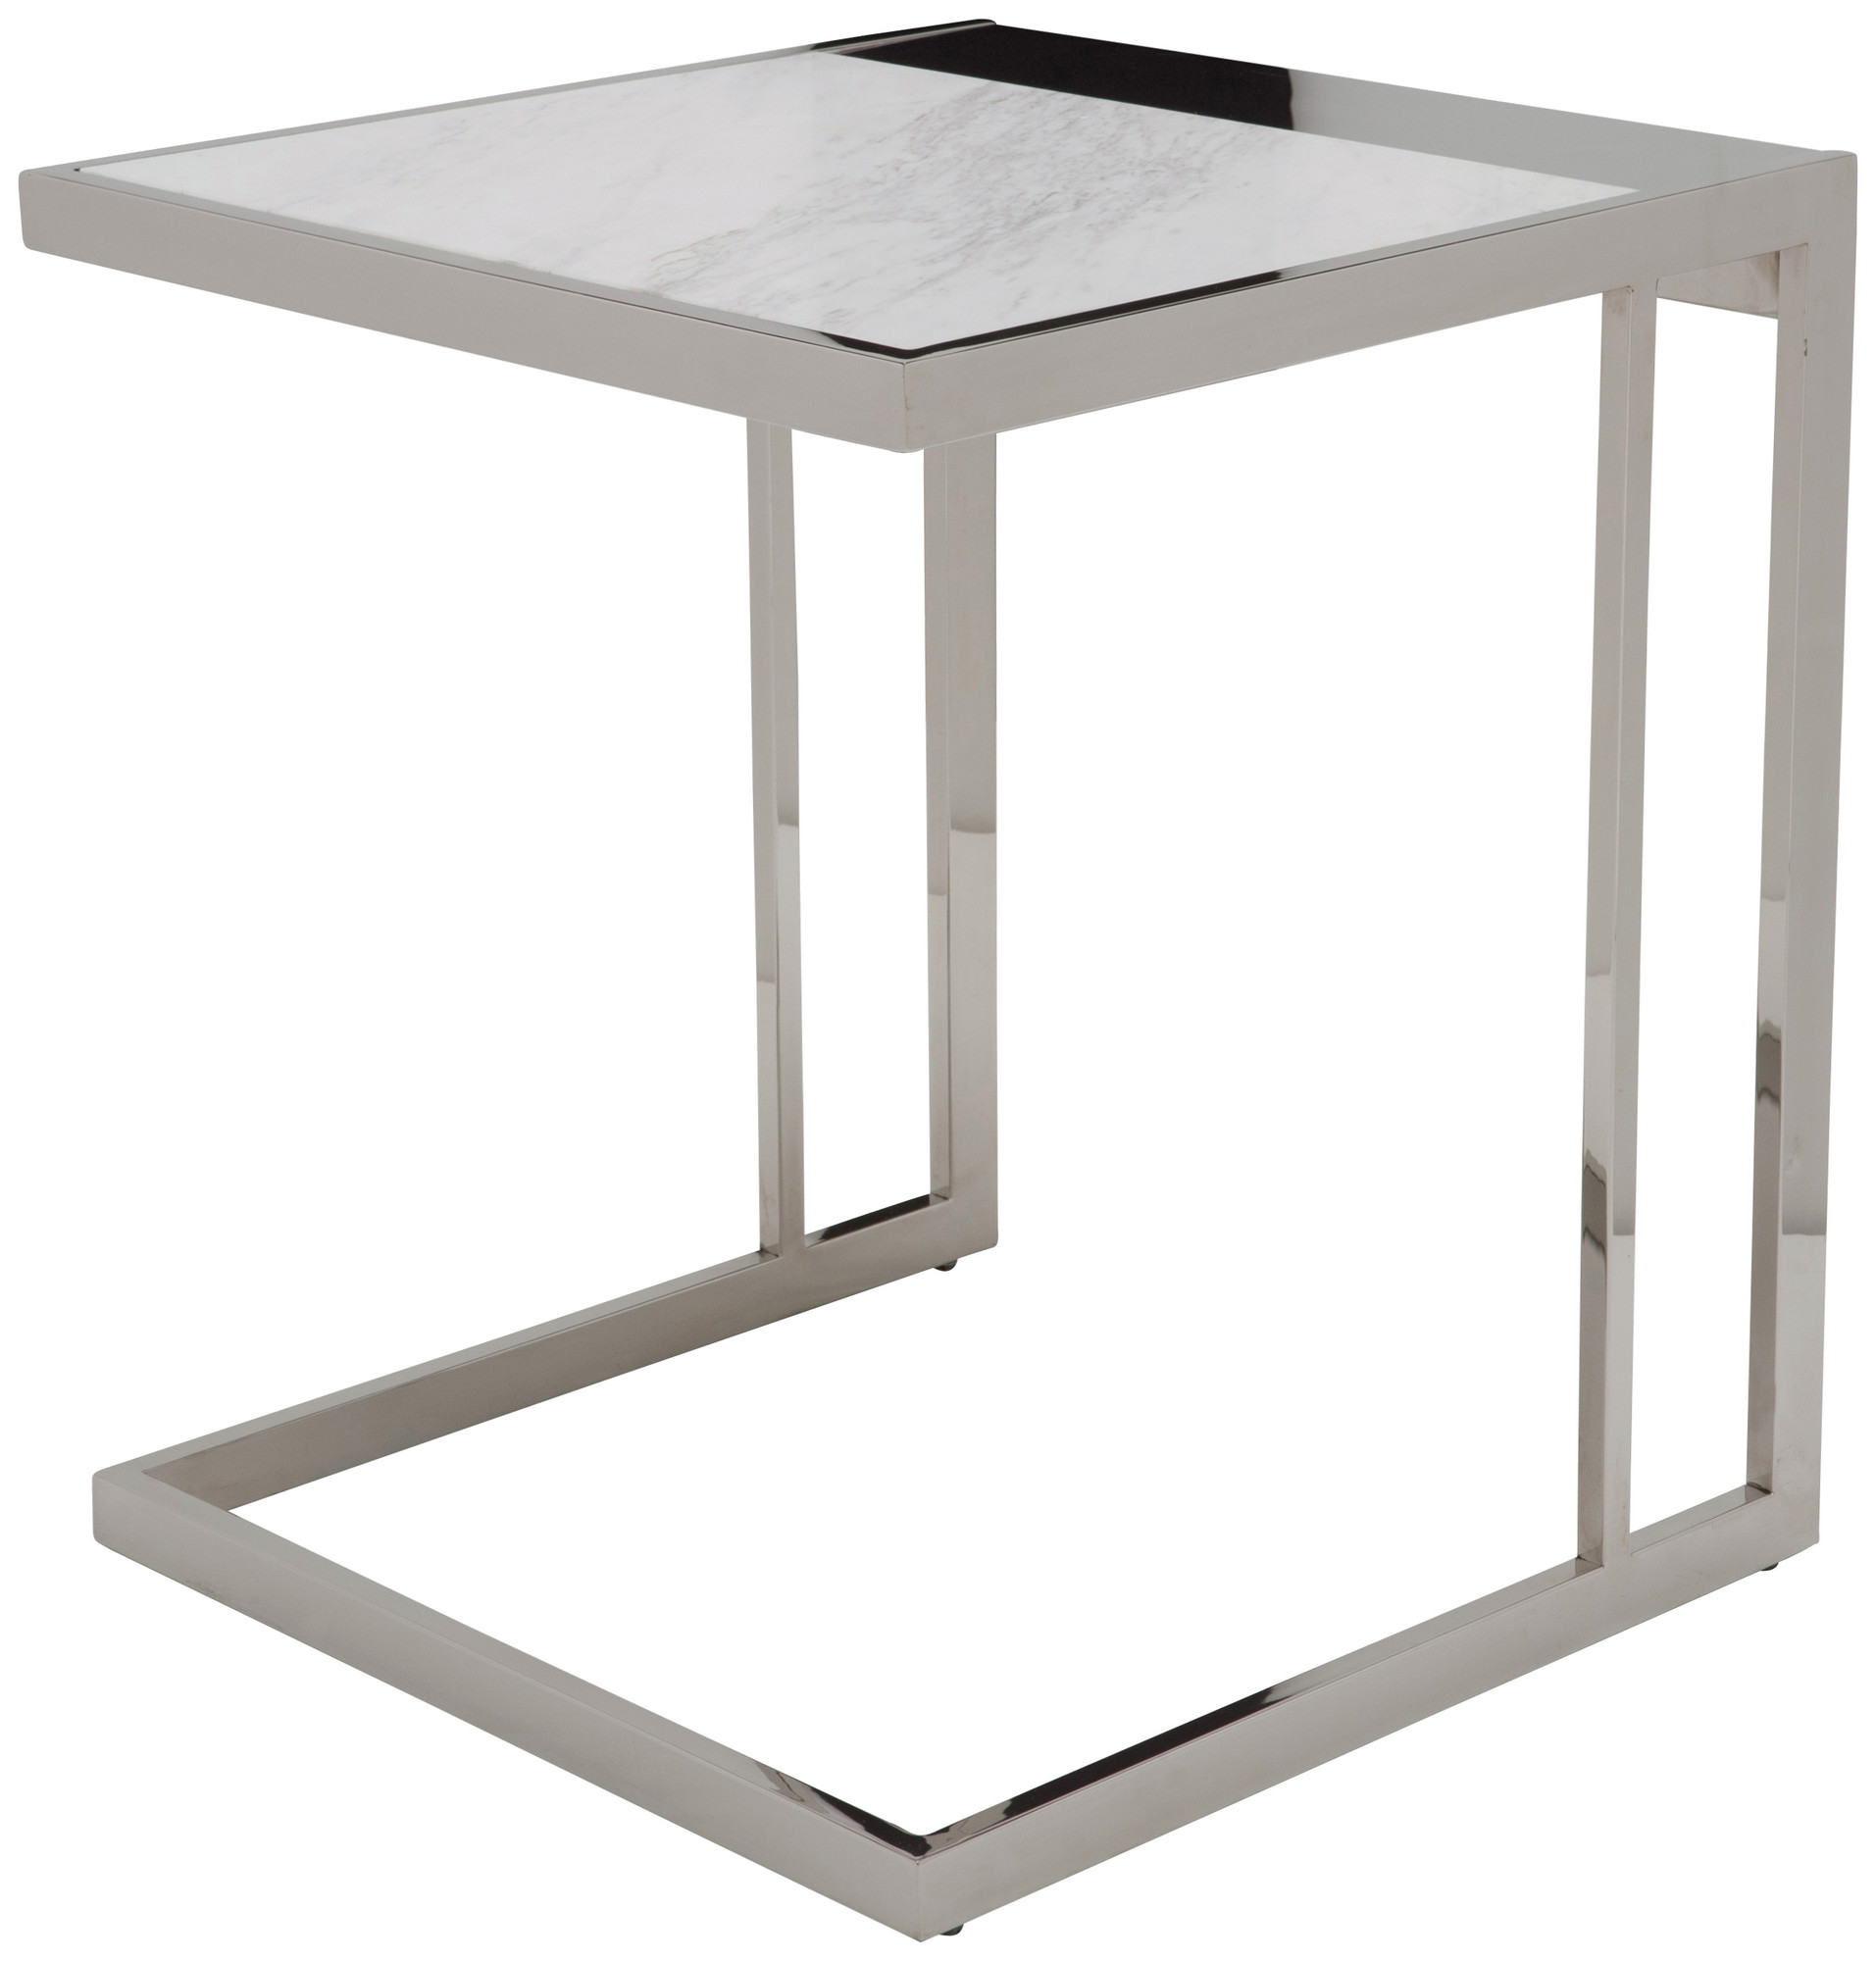 ethan-end-table-white-marble.jpg